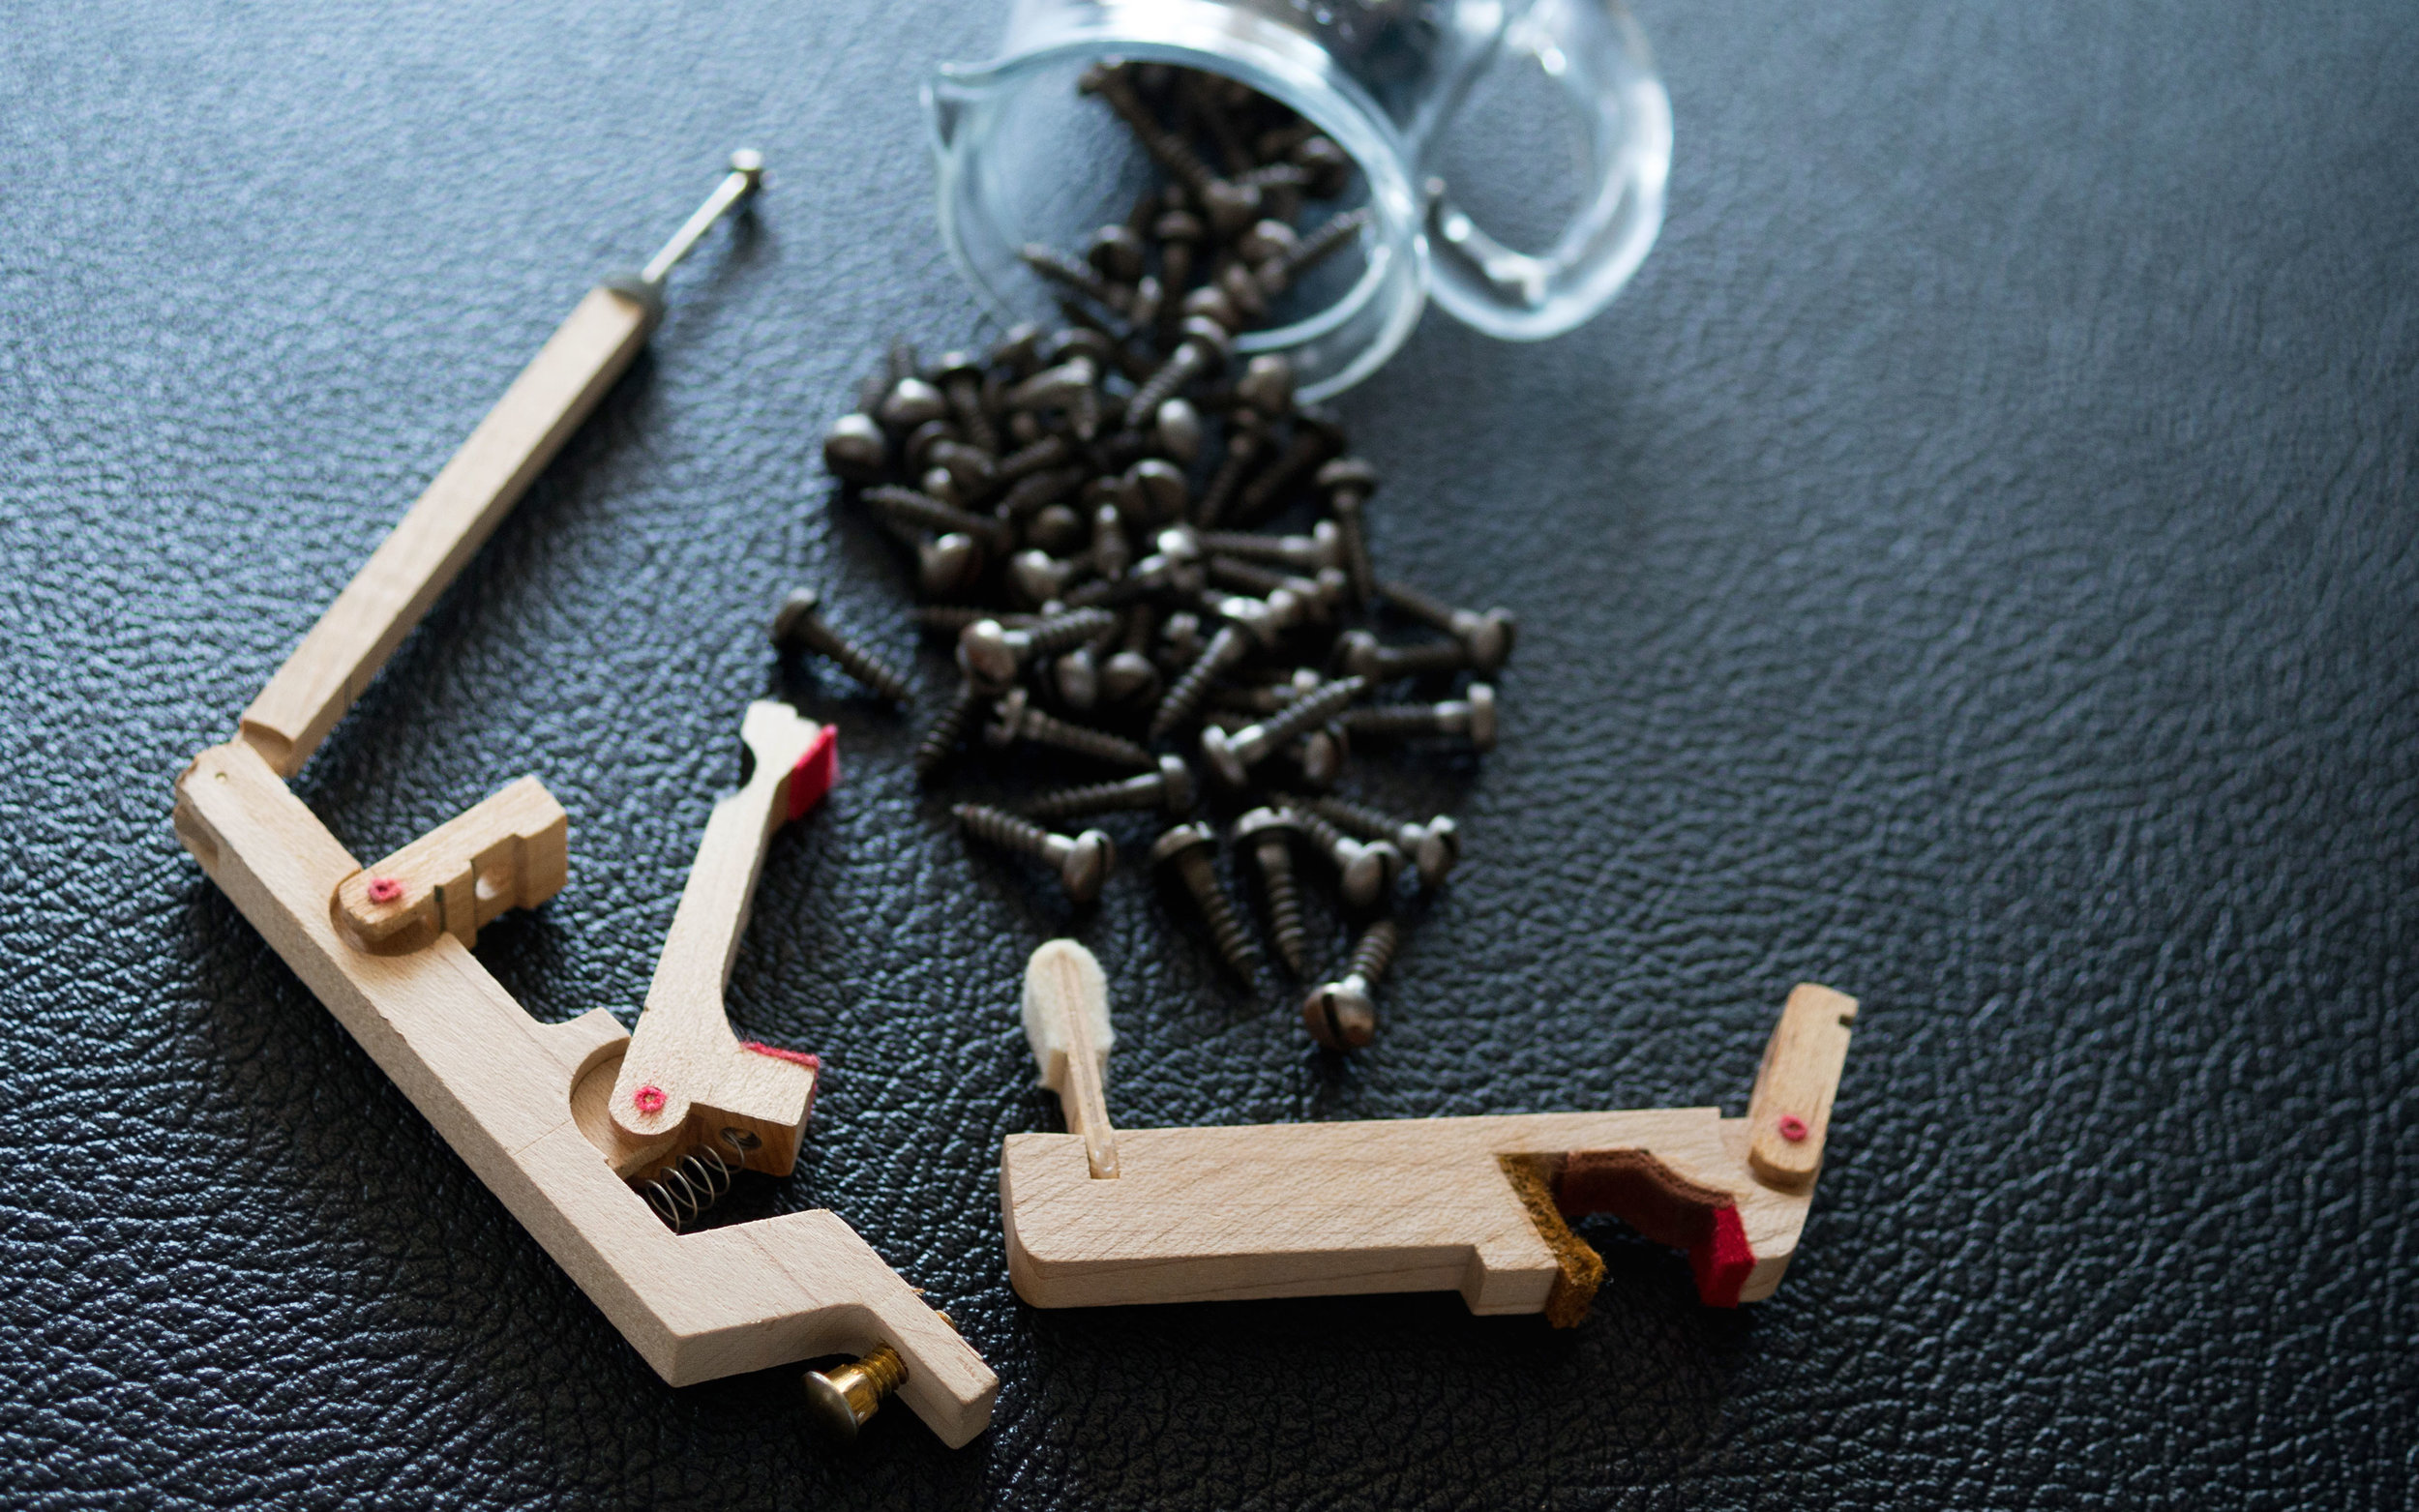 Copy of Wurlitzer screws and whip assembly